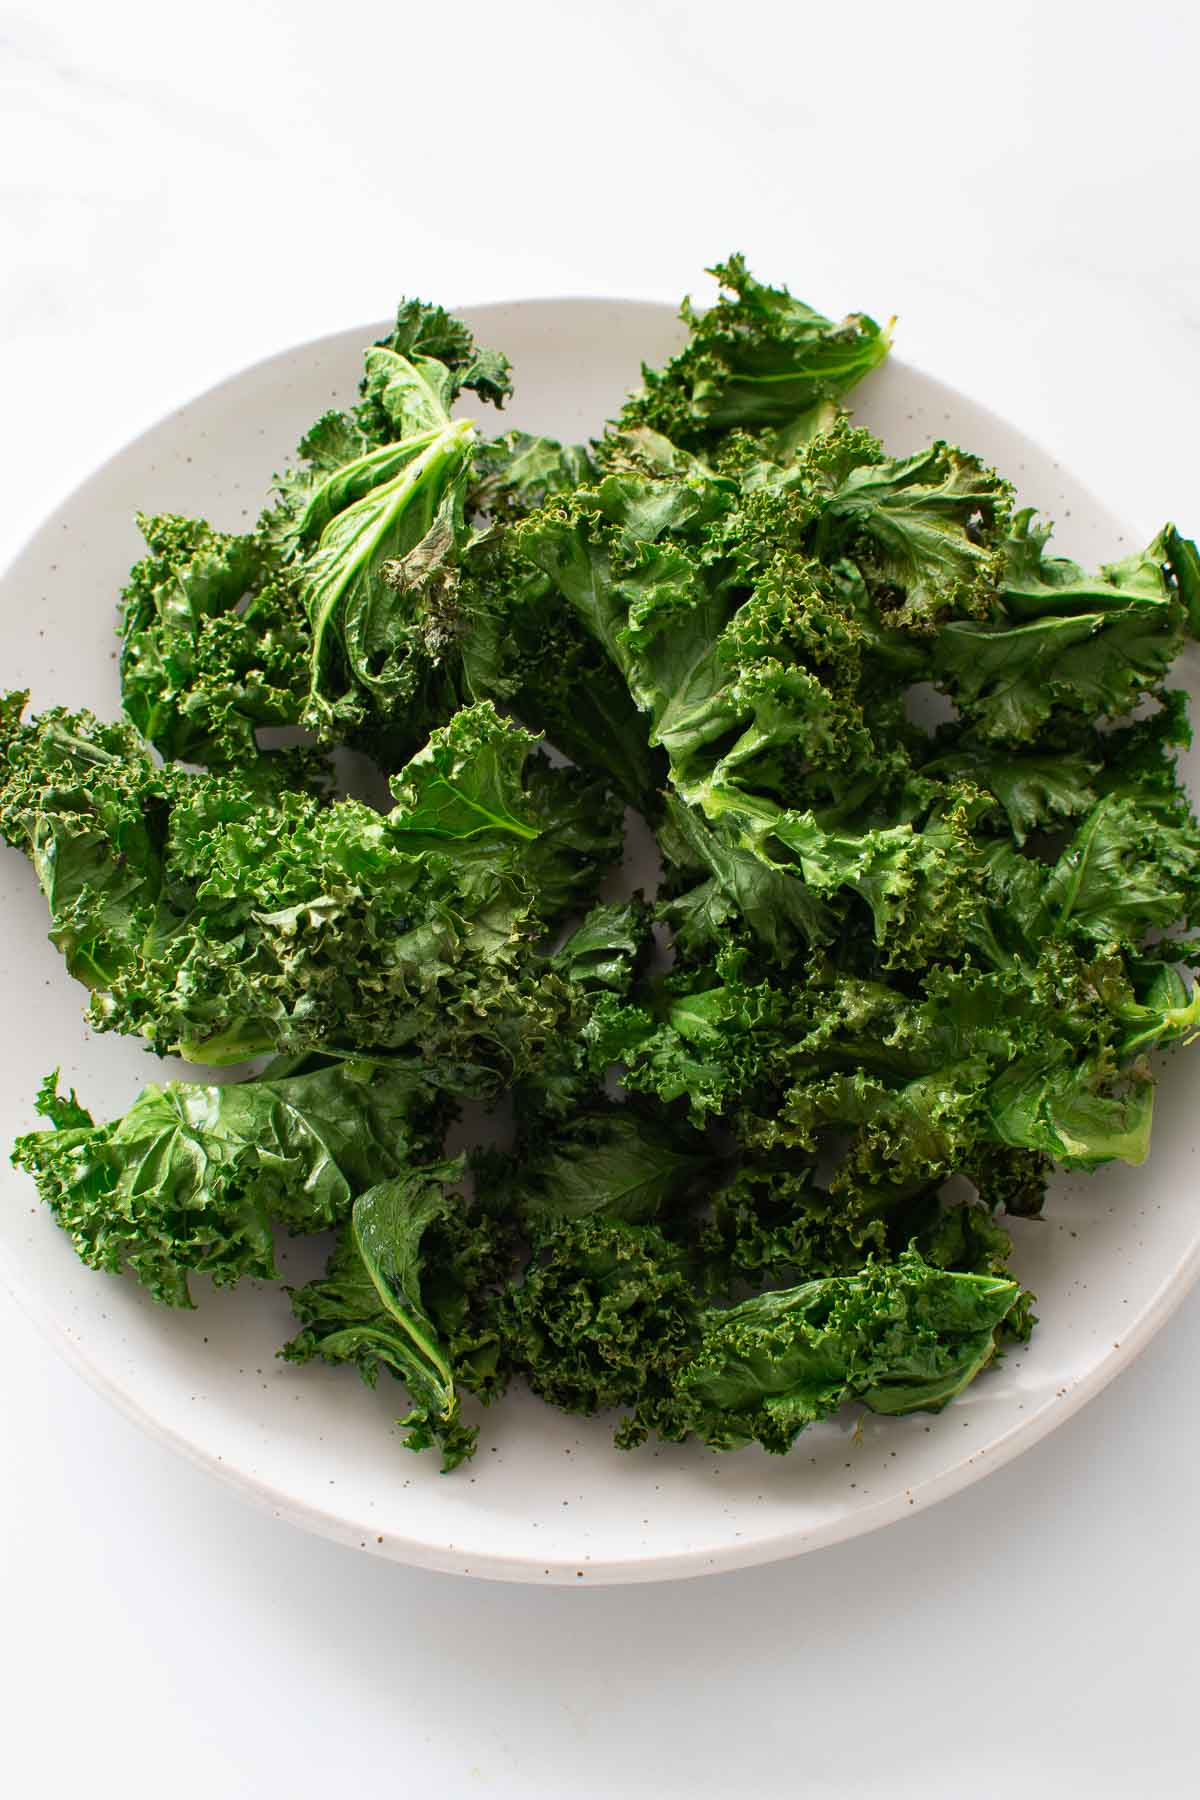 Close up of a plate of kale chips.